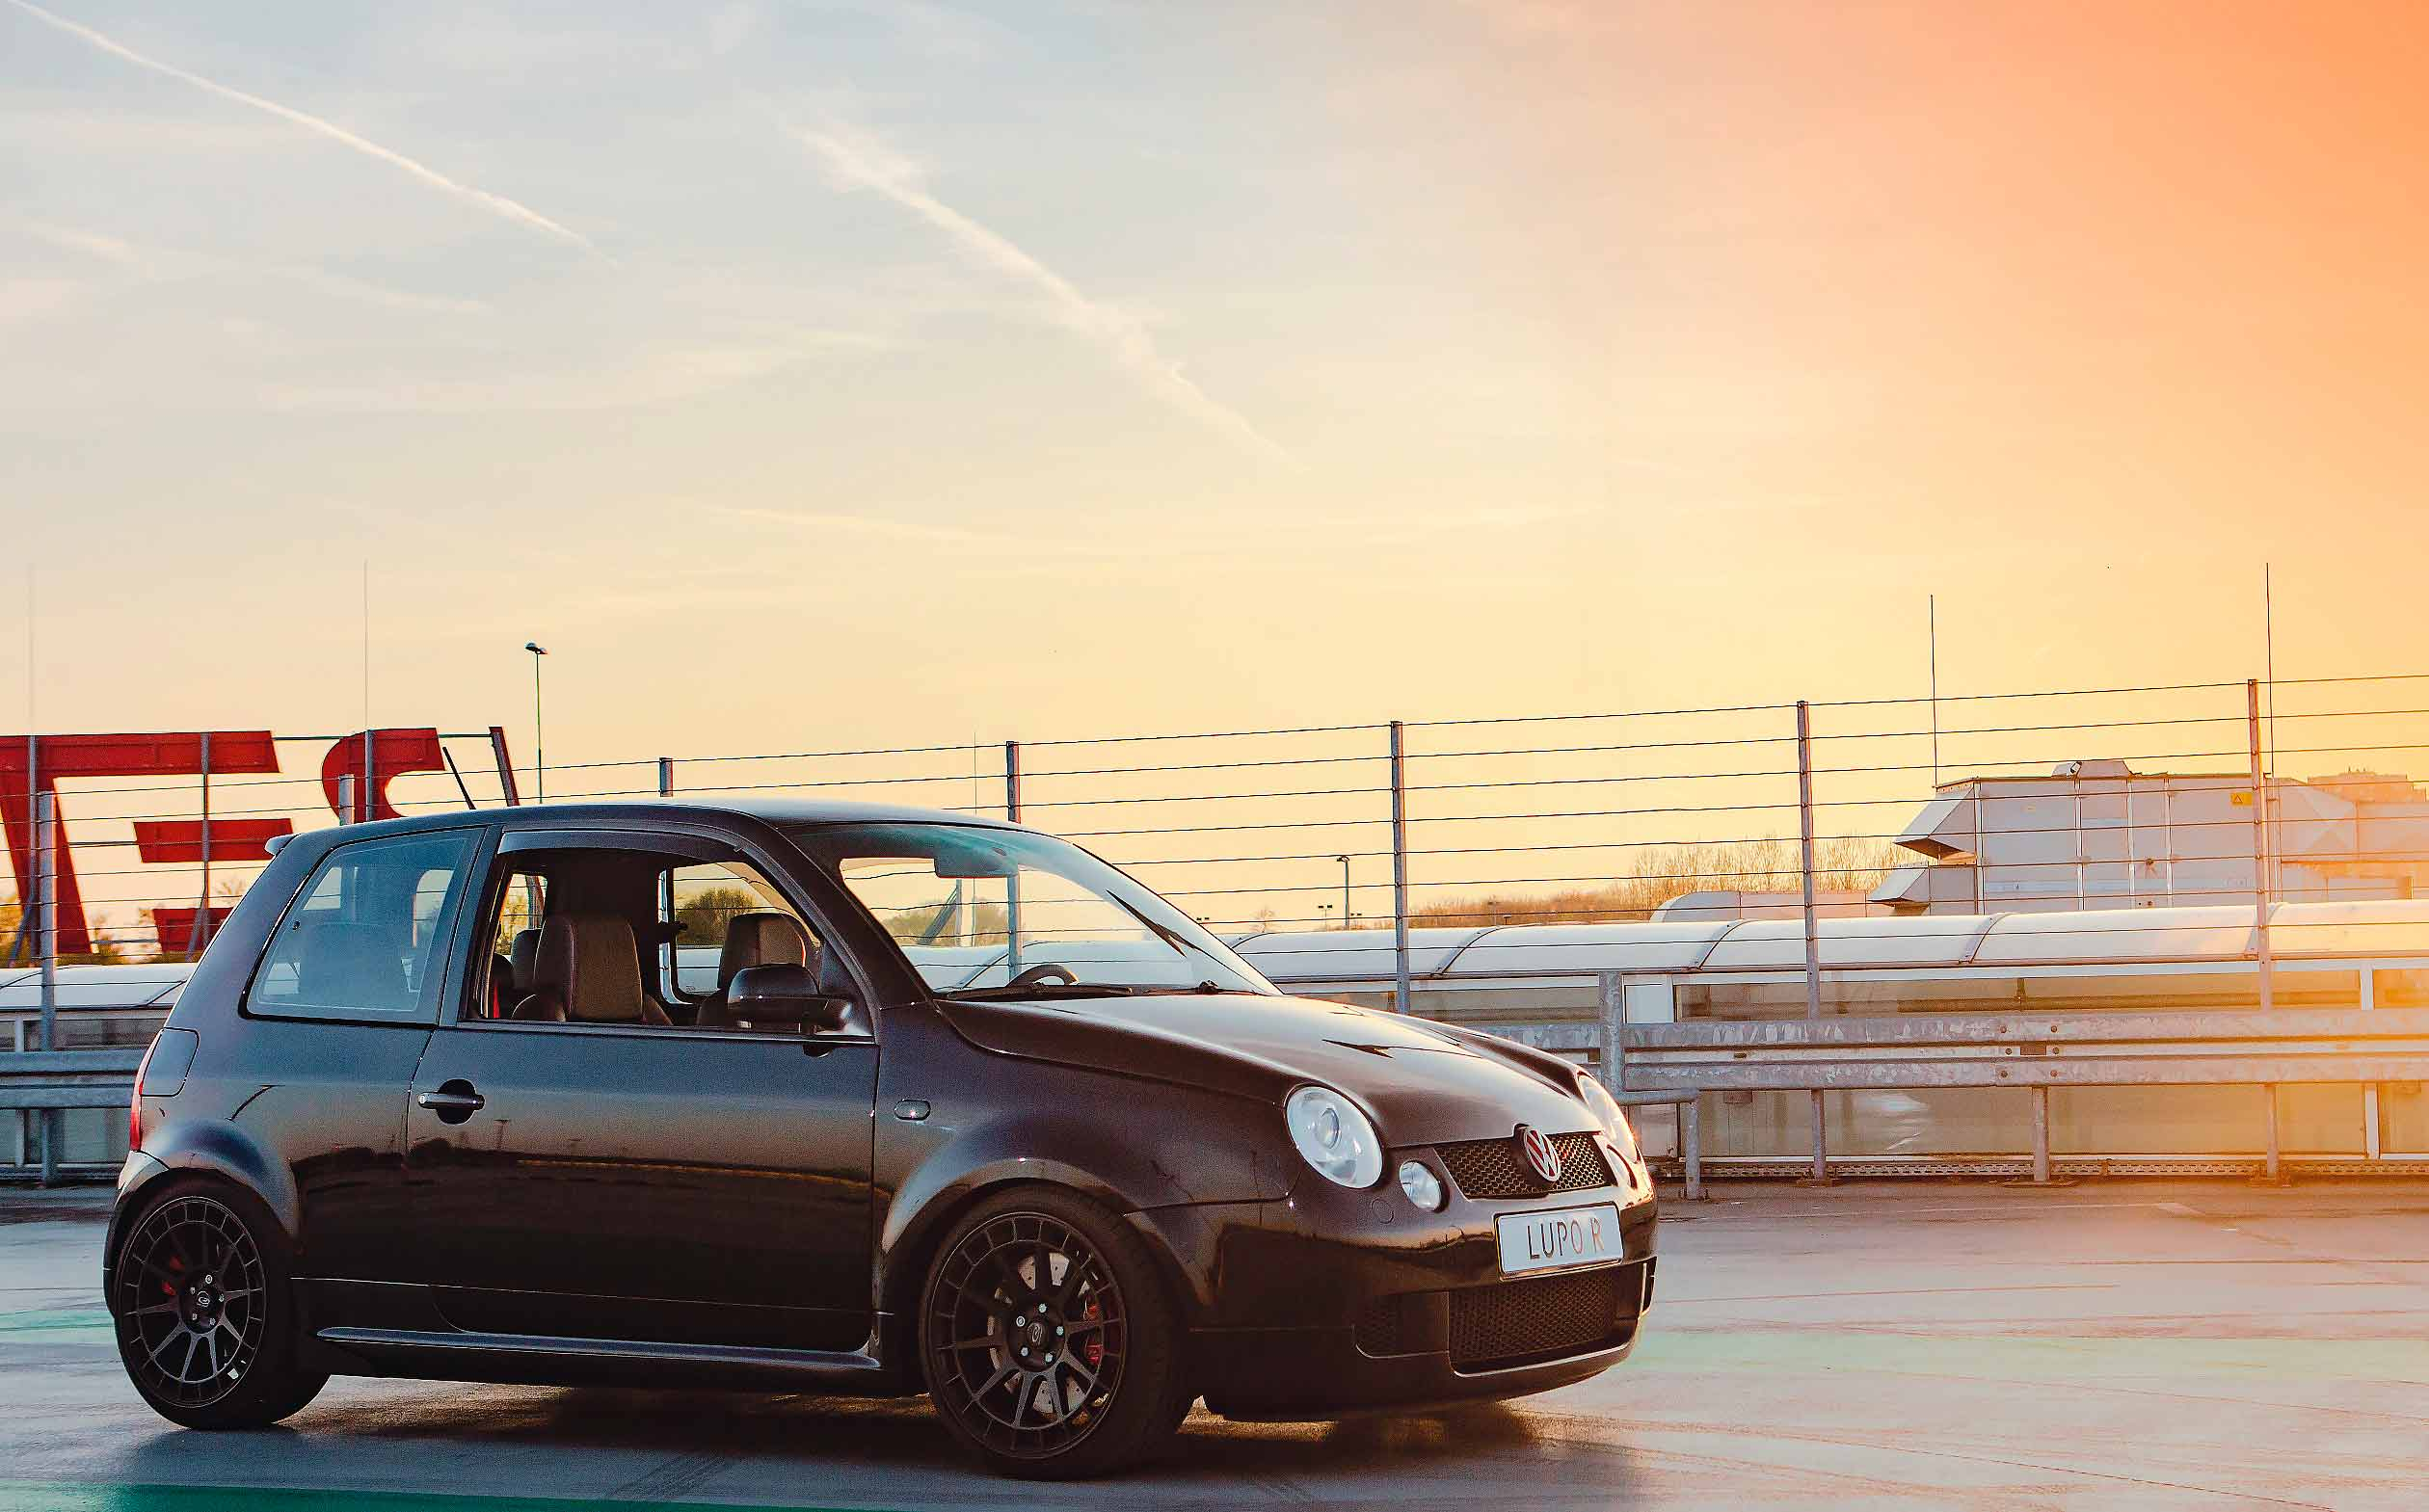 350bhp tuned Volkswagen Lupo GTI gets 2 0 TSI with K04 turbo